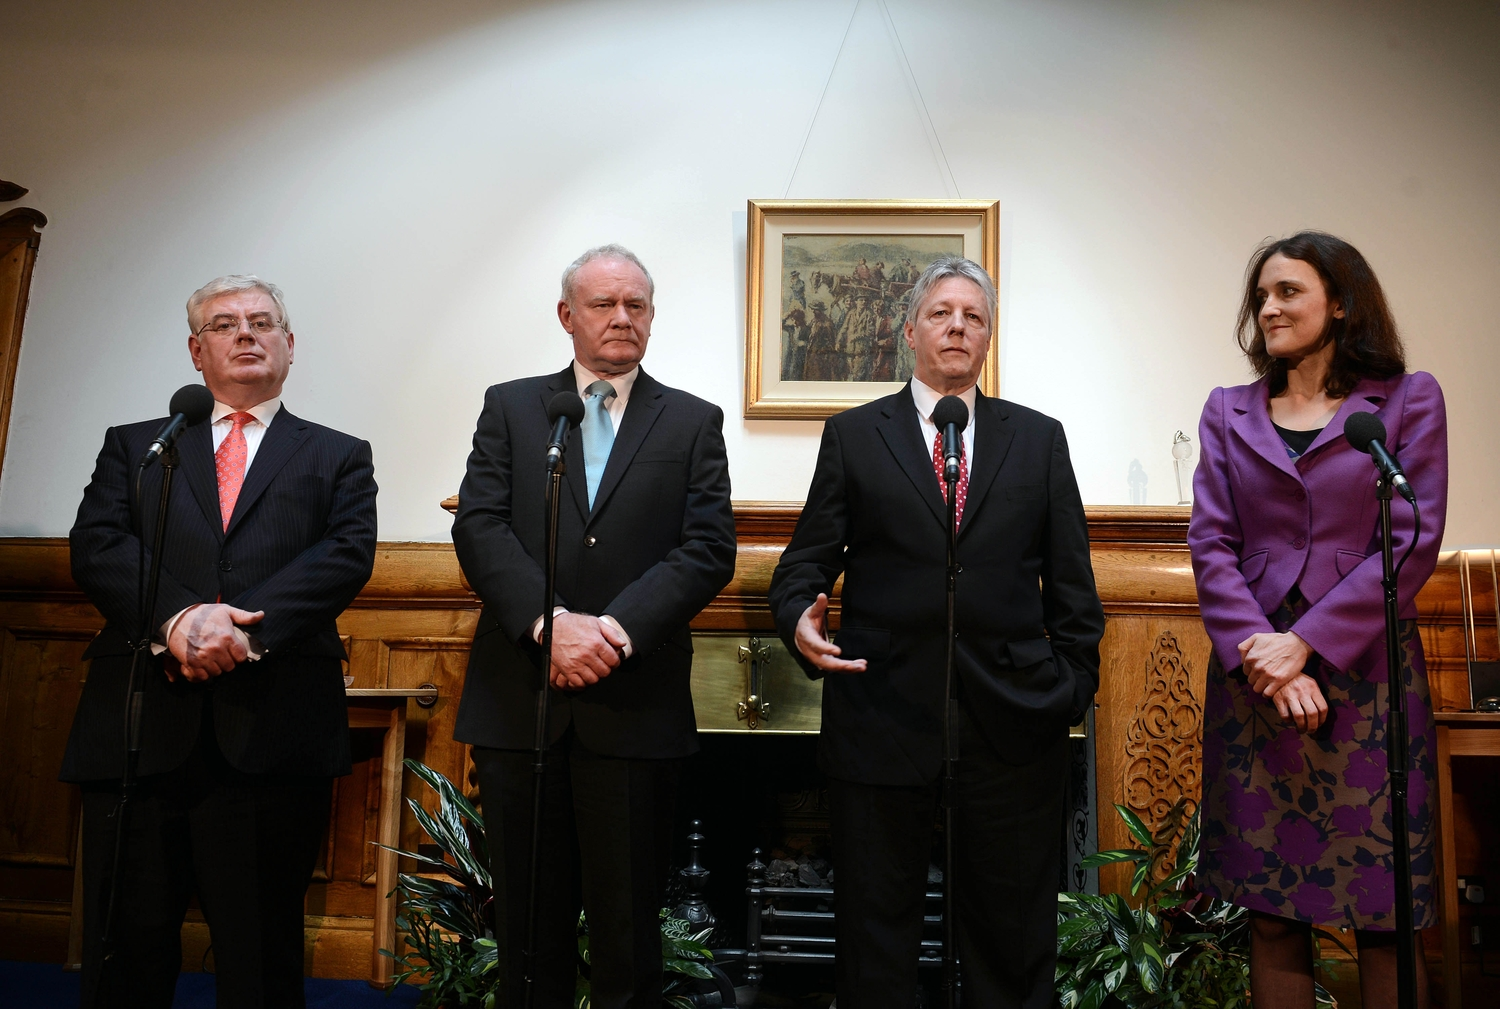 Peter Robinson & Martin McGuinness meet Theresa Villiers & Eamon Gilmore.